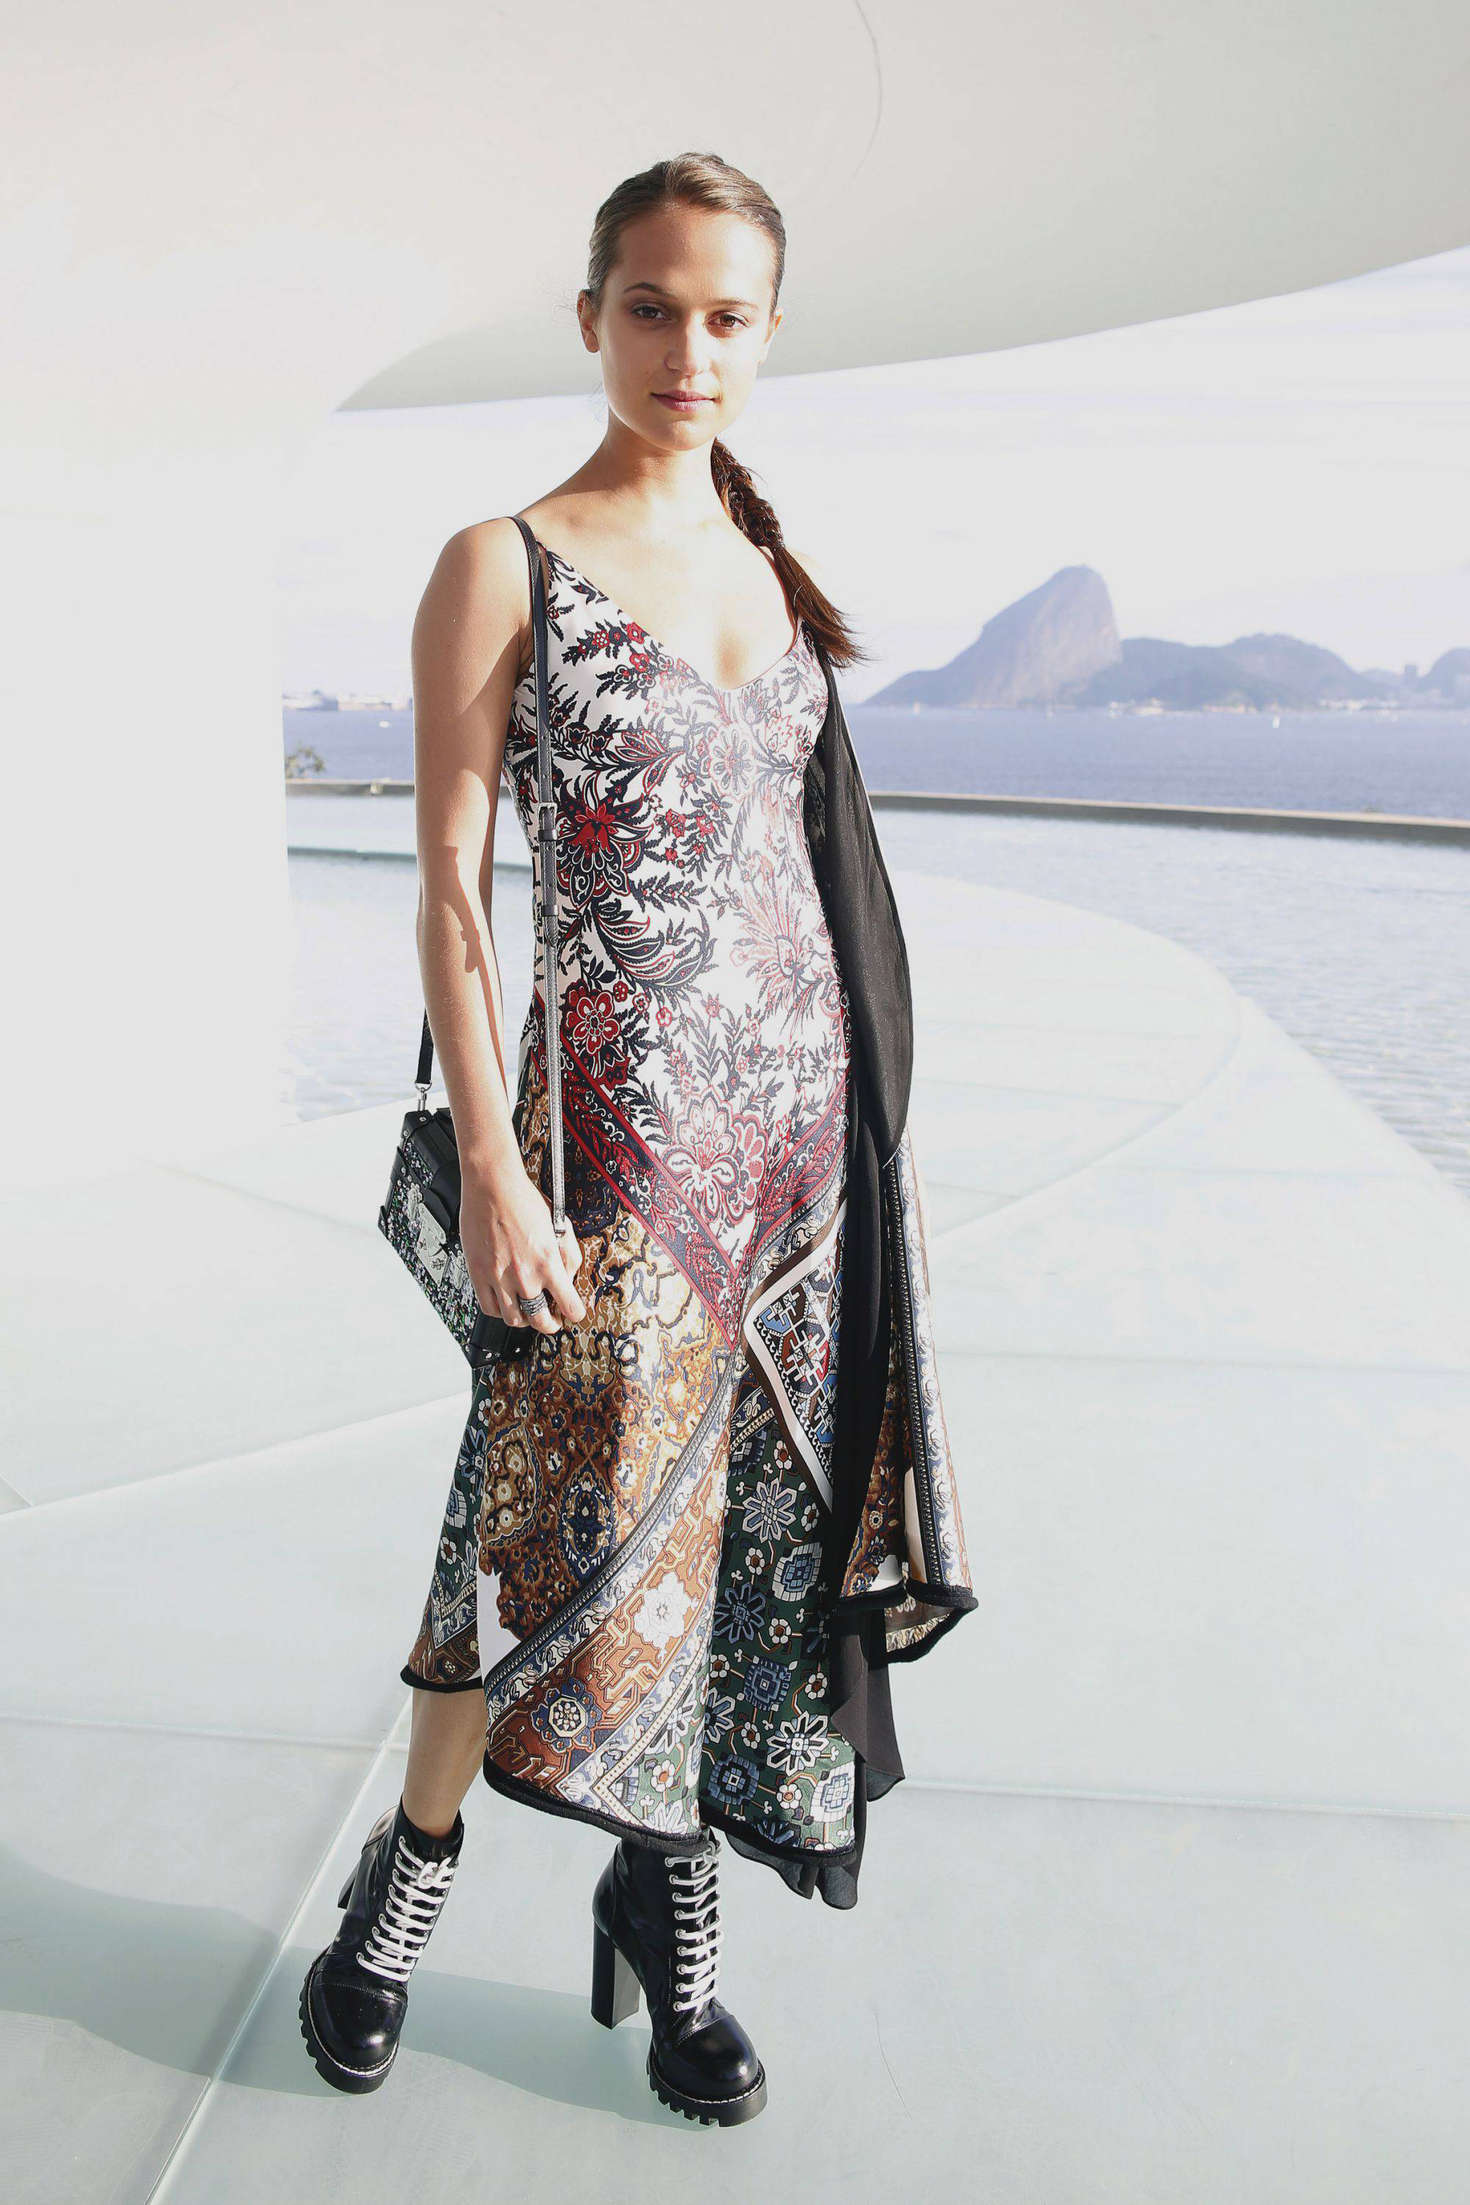 Alicia Vikander in Louis Vuitton Credit: Jayne Mountford